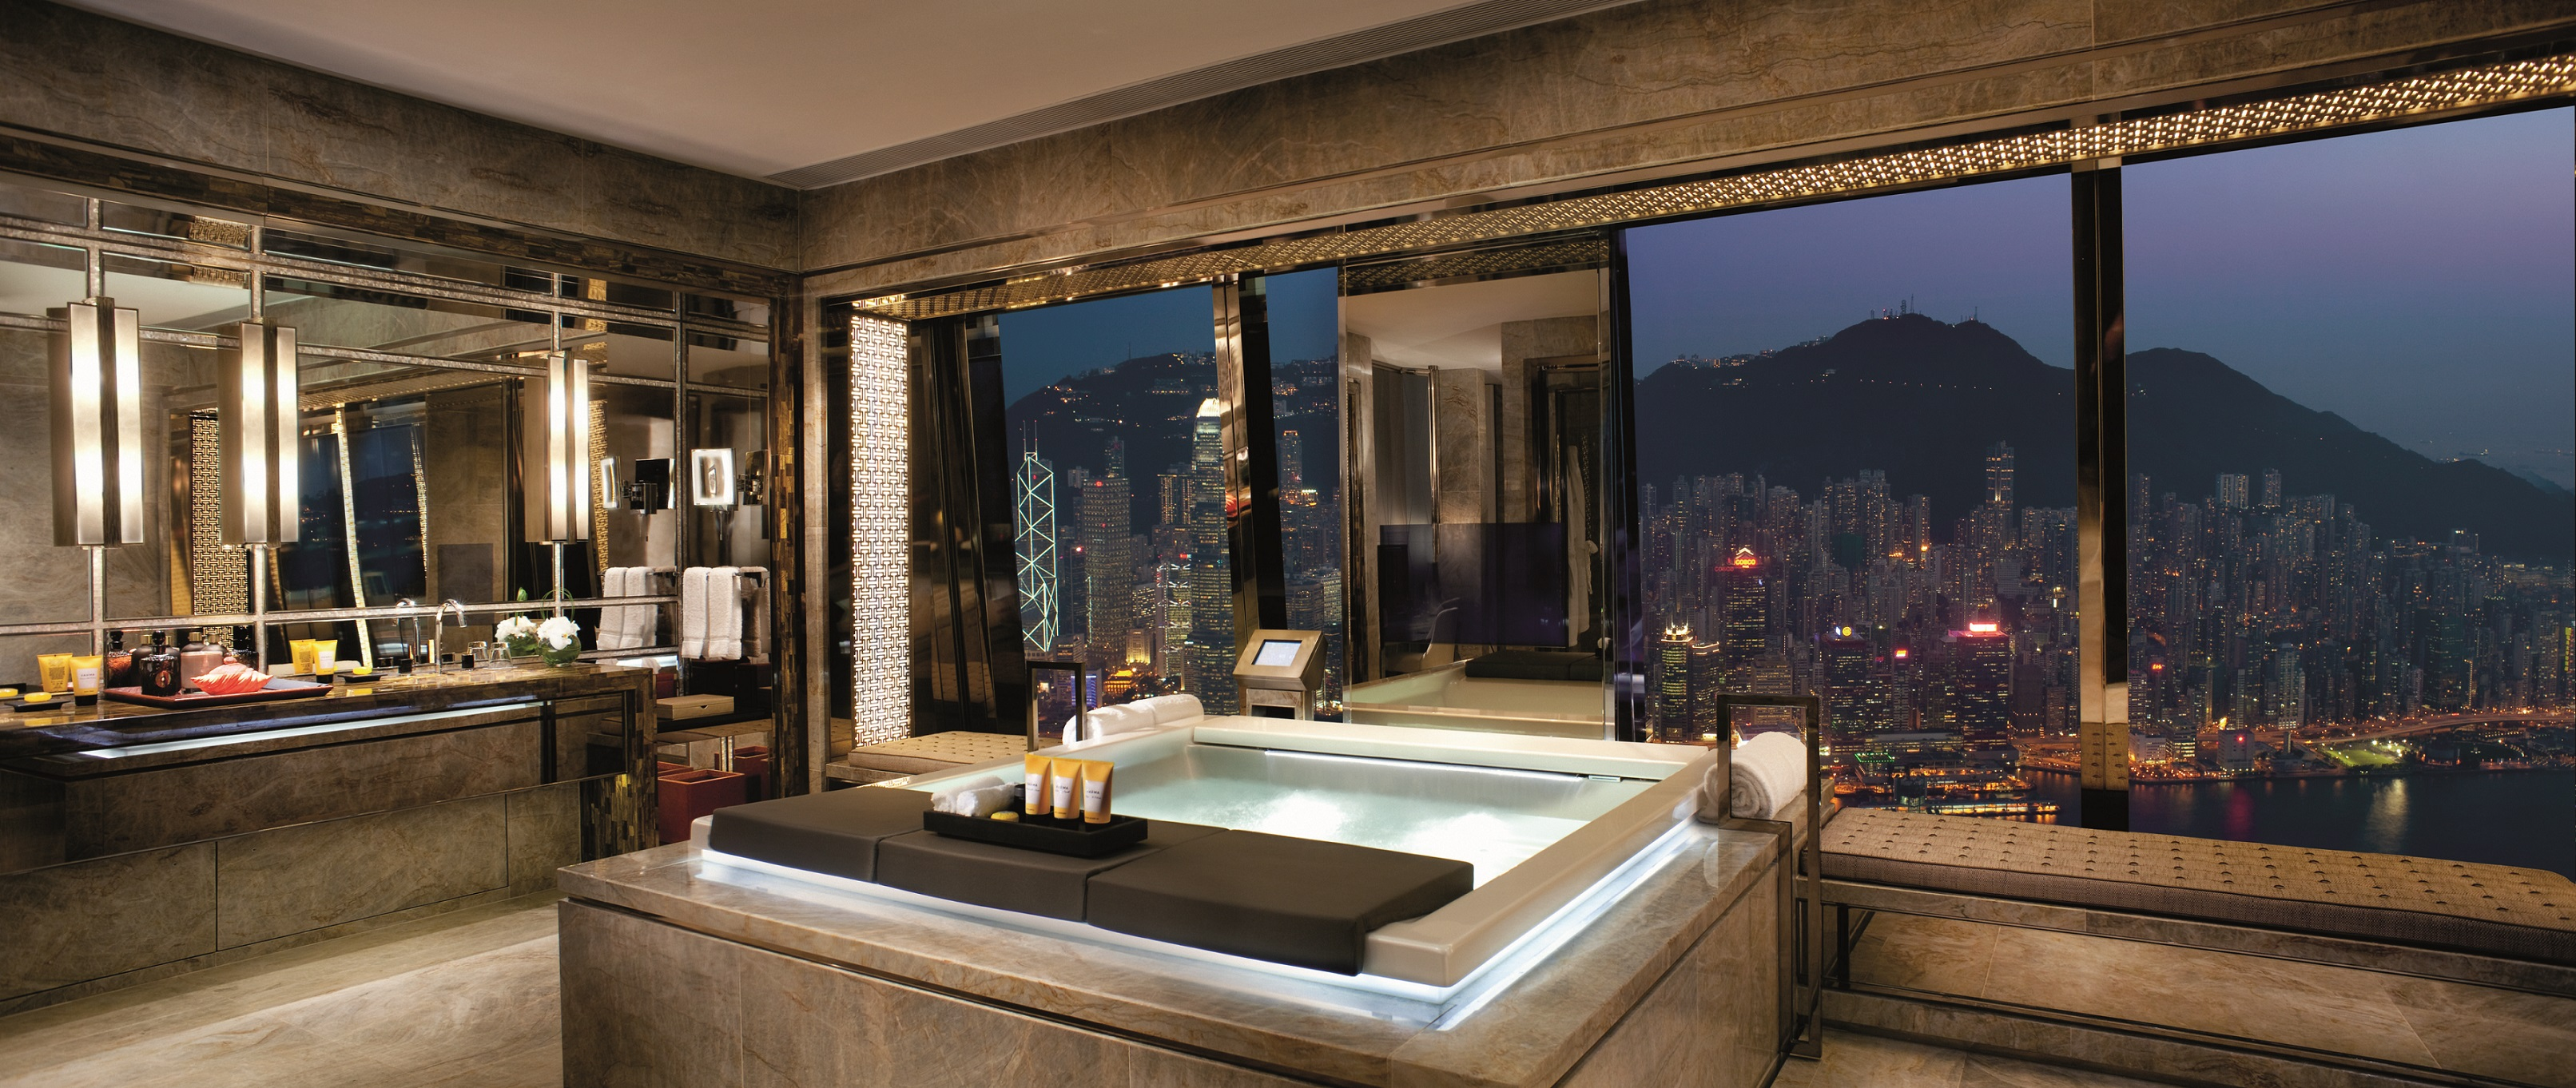 The Ritz-Carlton Suite - Victoria Harbour, Luxury Bathrooms